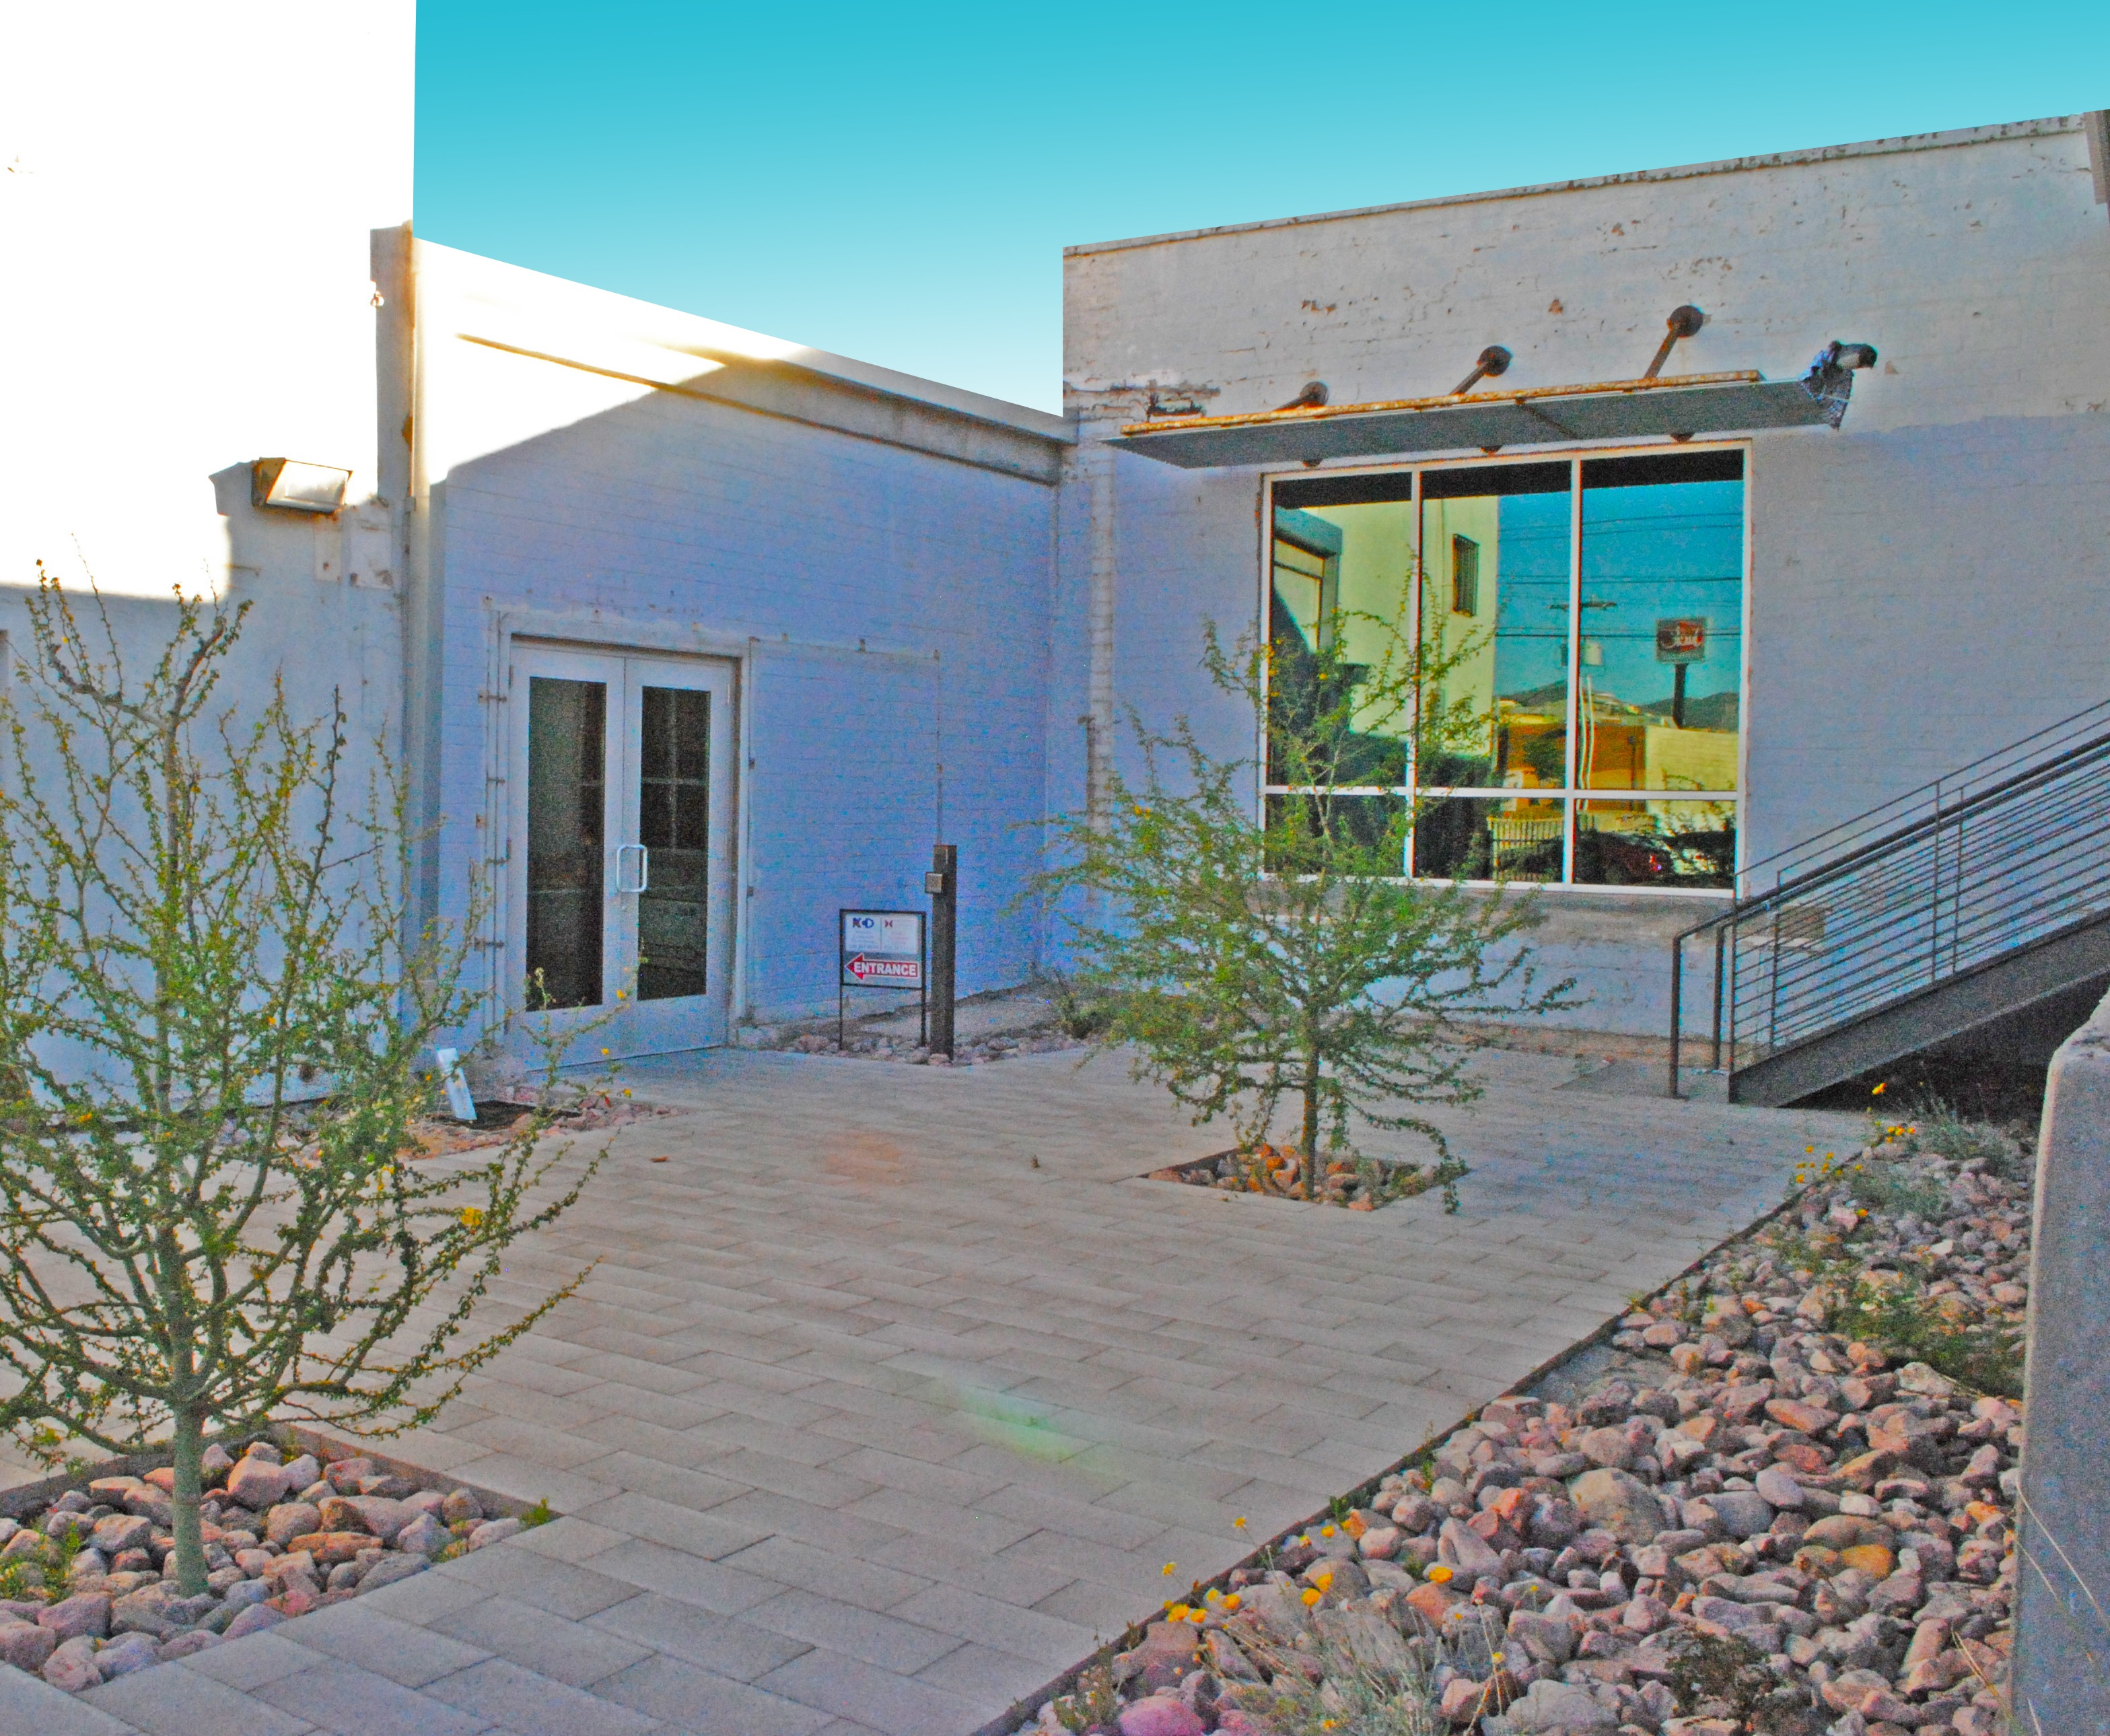 Family Learning Center Exterior - Nogales